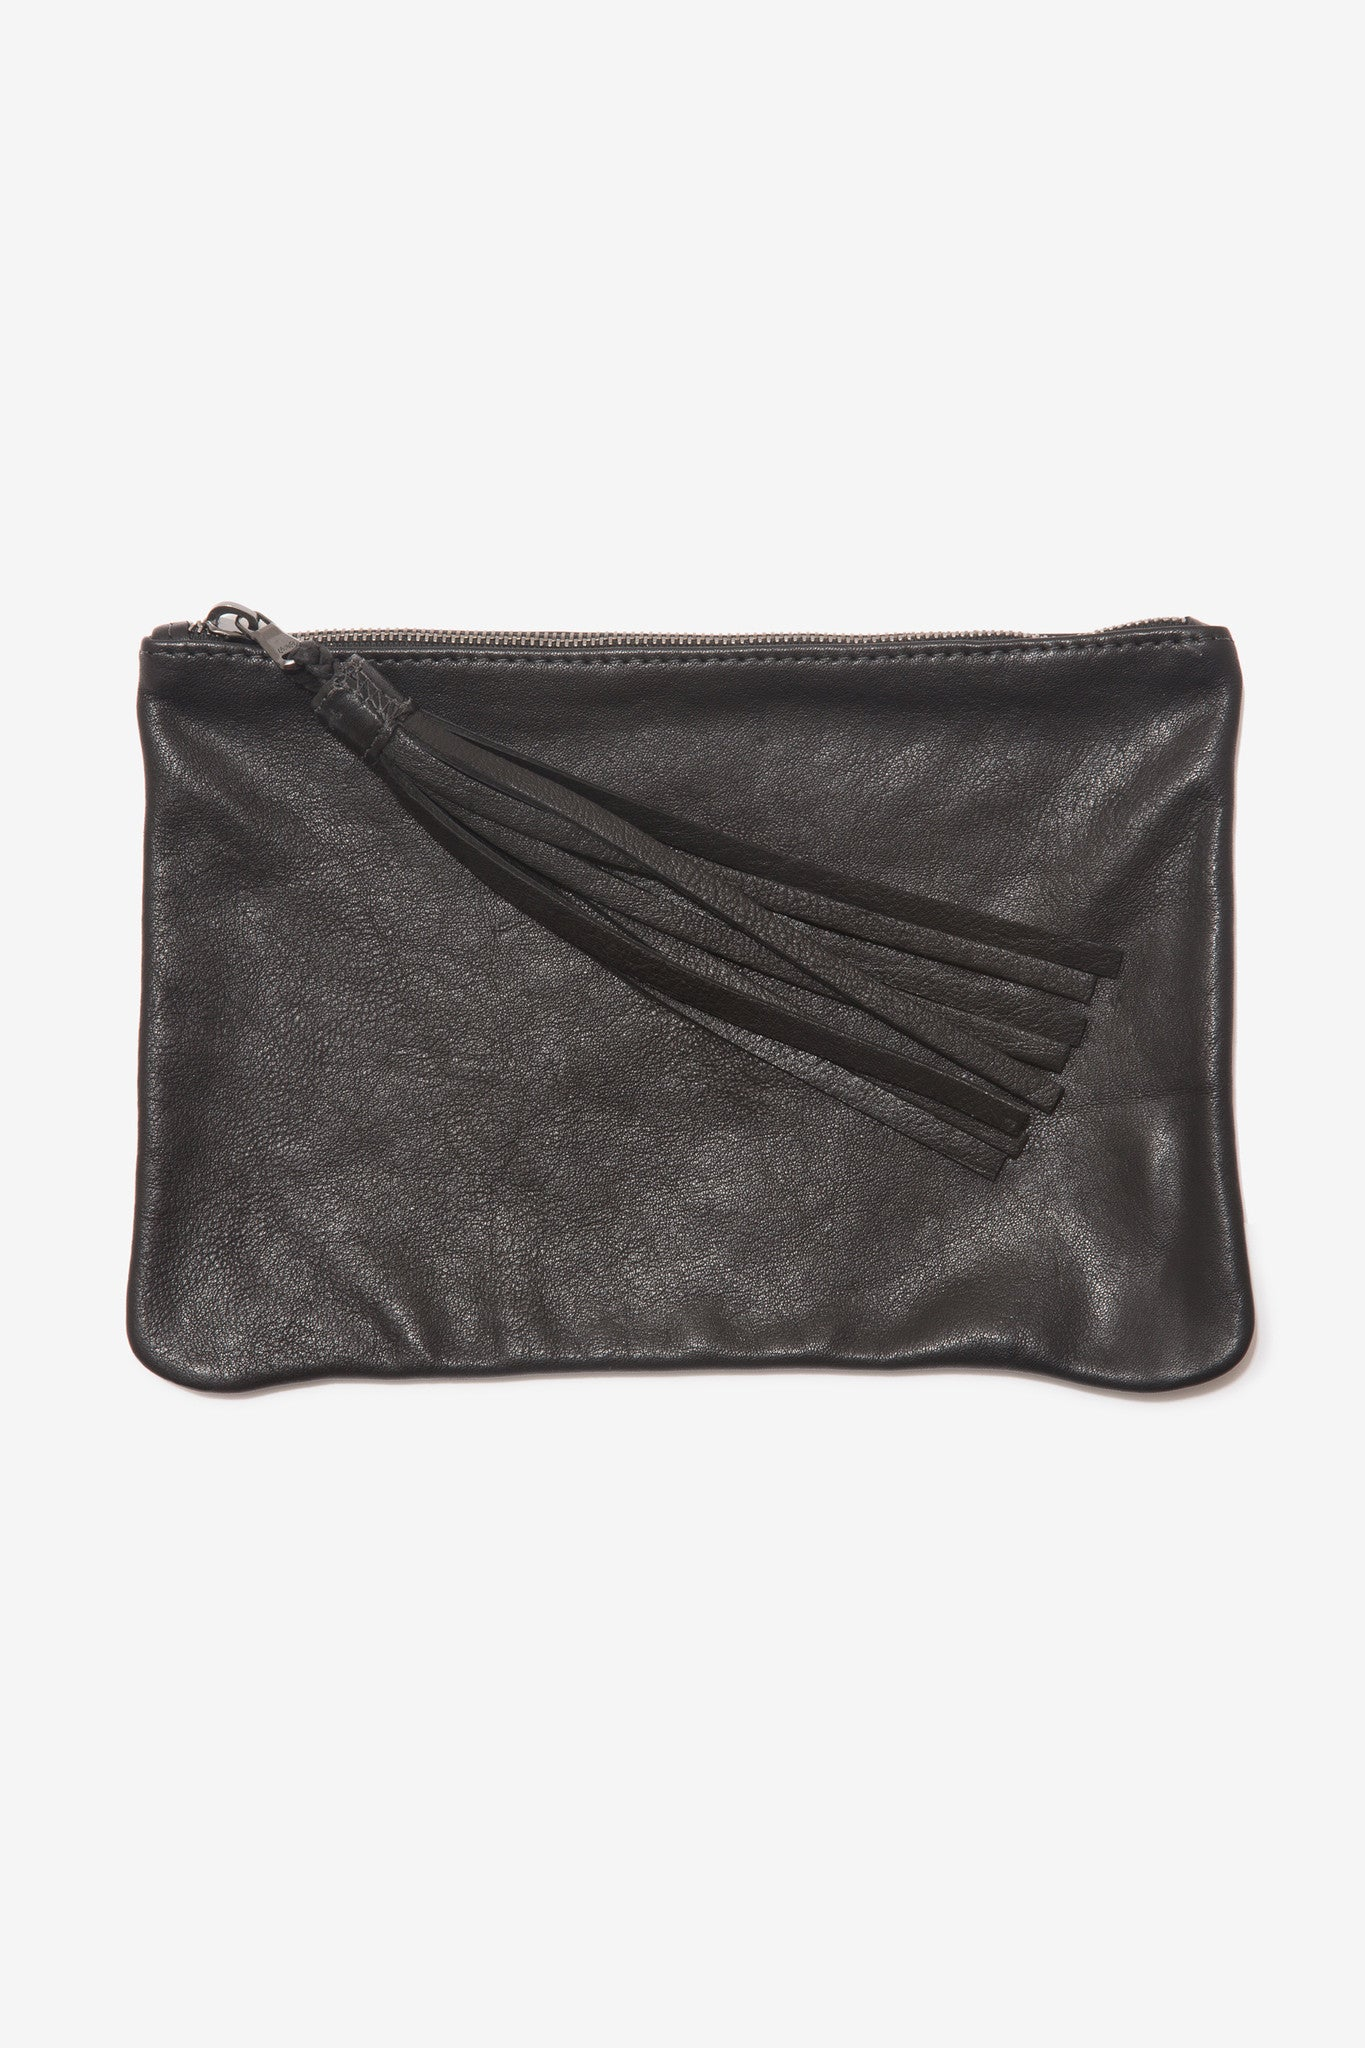 The Large Black Pouch is a large leather pouch with a leather tassel zip by Moses Nadel.